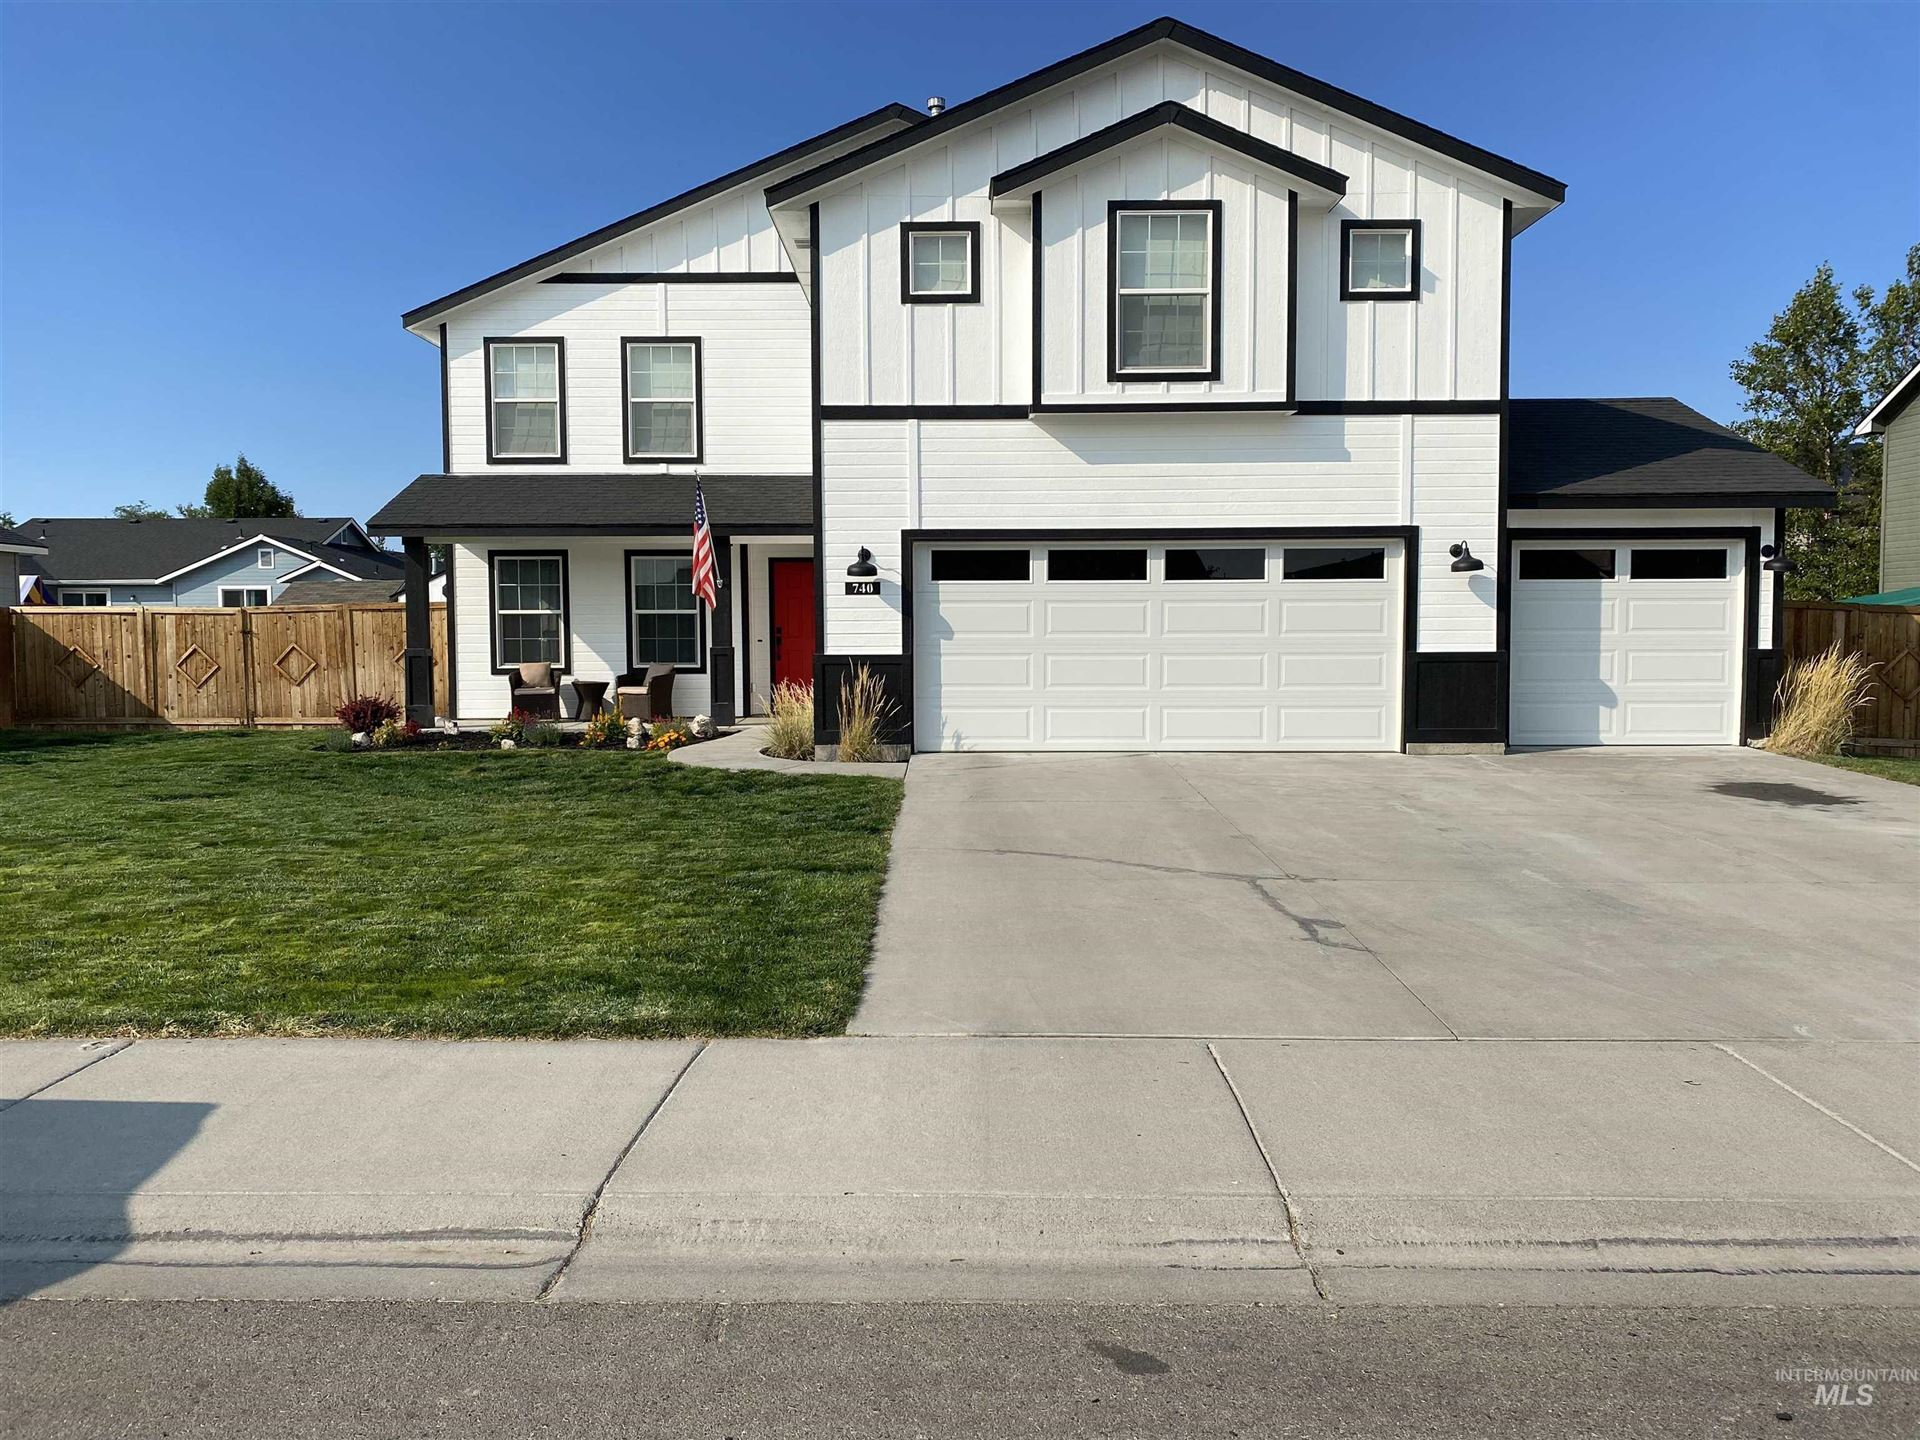 740 SW Panner St., Mountain Home, ID 83647-6463 - MLS#: 98819286